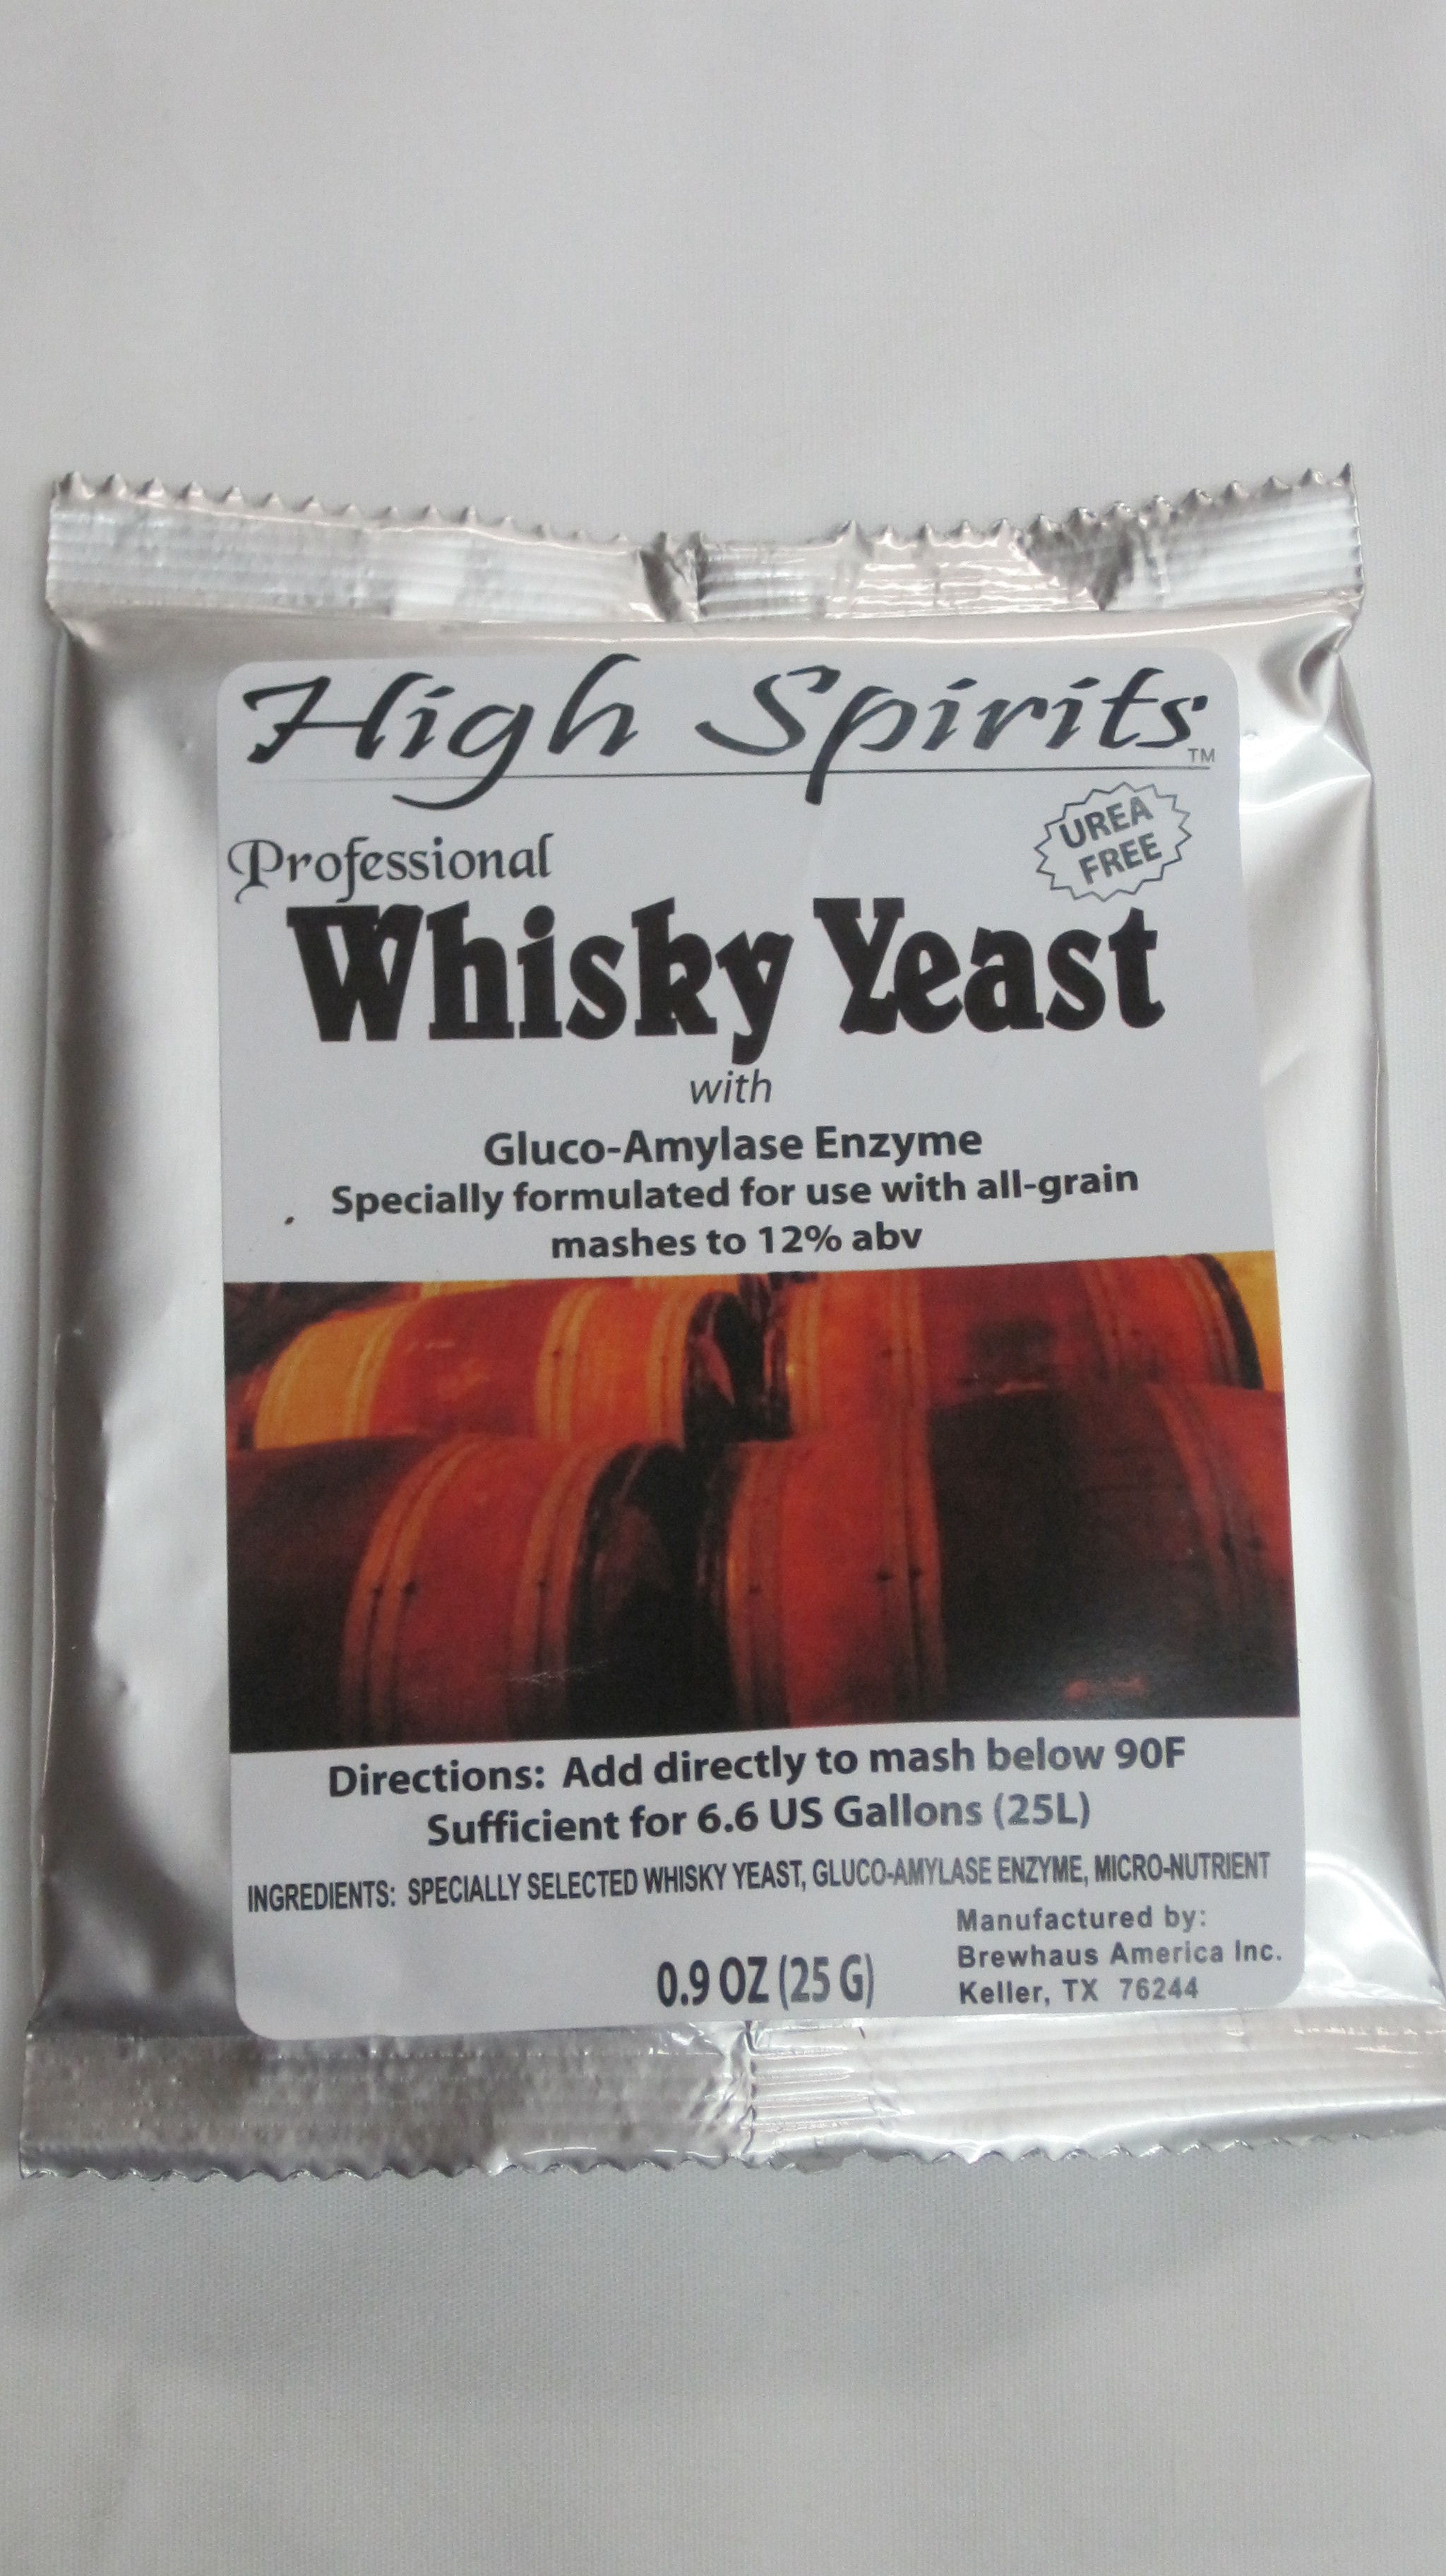 Yeast rum and whiskey 001.jpg